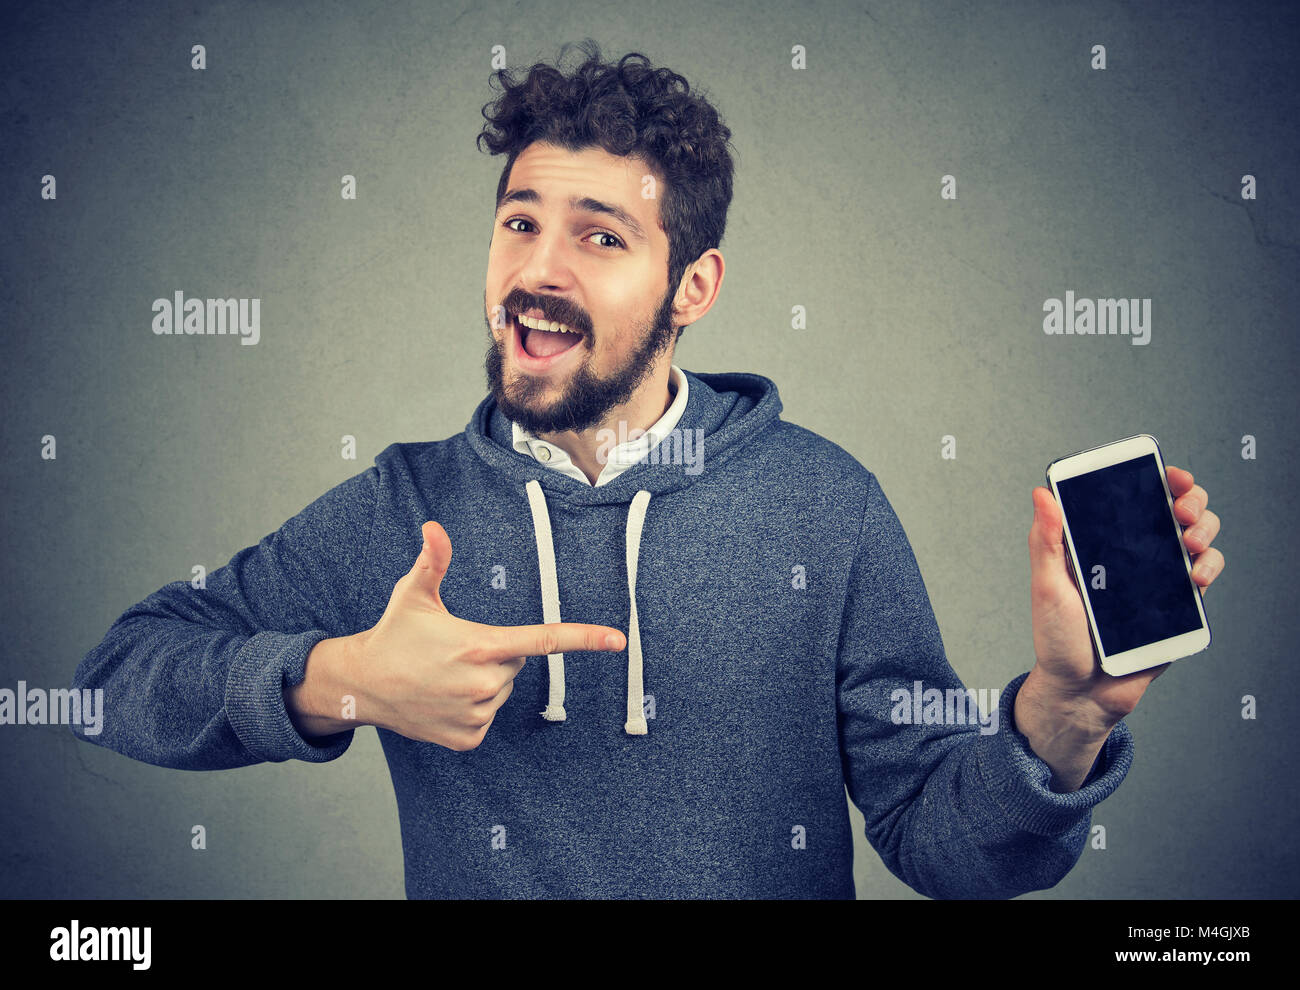 Young cheerful man showing new phone happy with great quality. - Stock Image